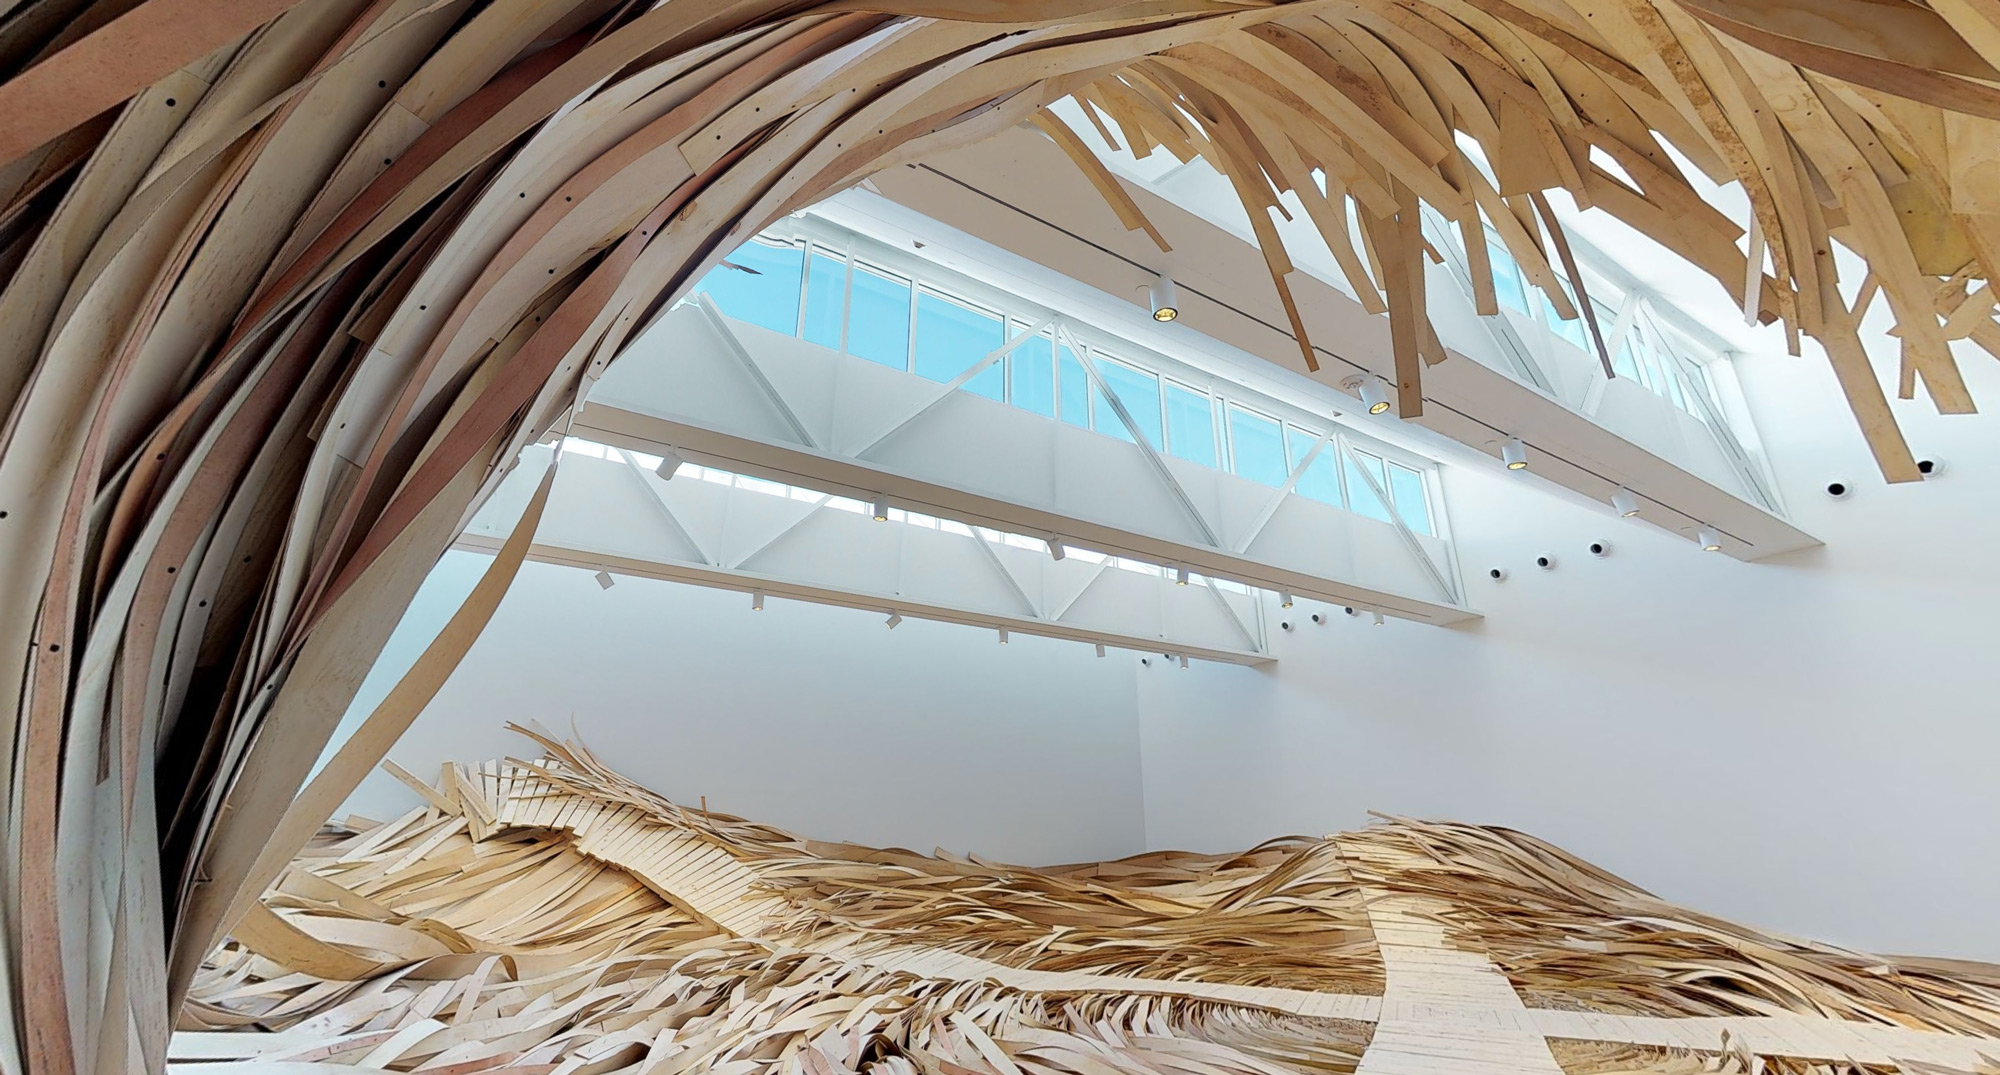 A Massive Wooden Wave Surges From a Gallery Floor in an Installation by Wade Kavanaugh and Stephen B. Nguyen